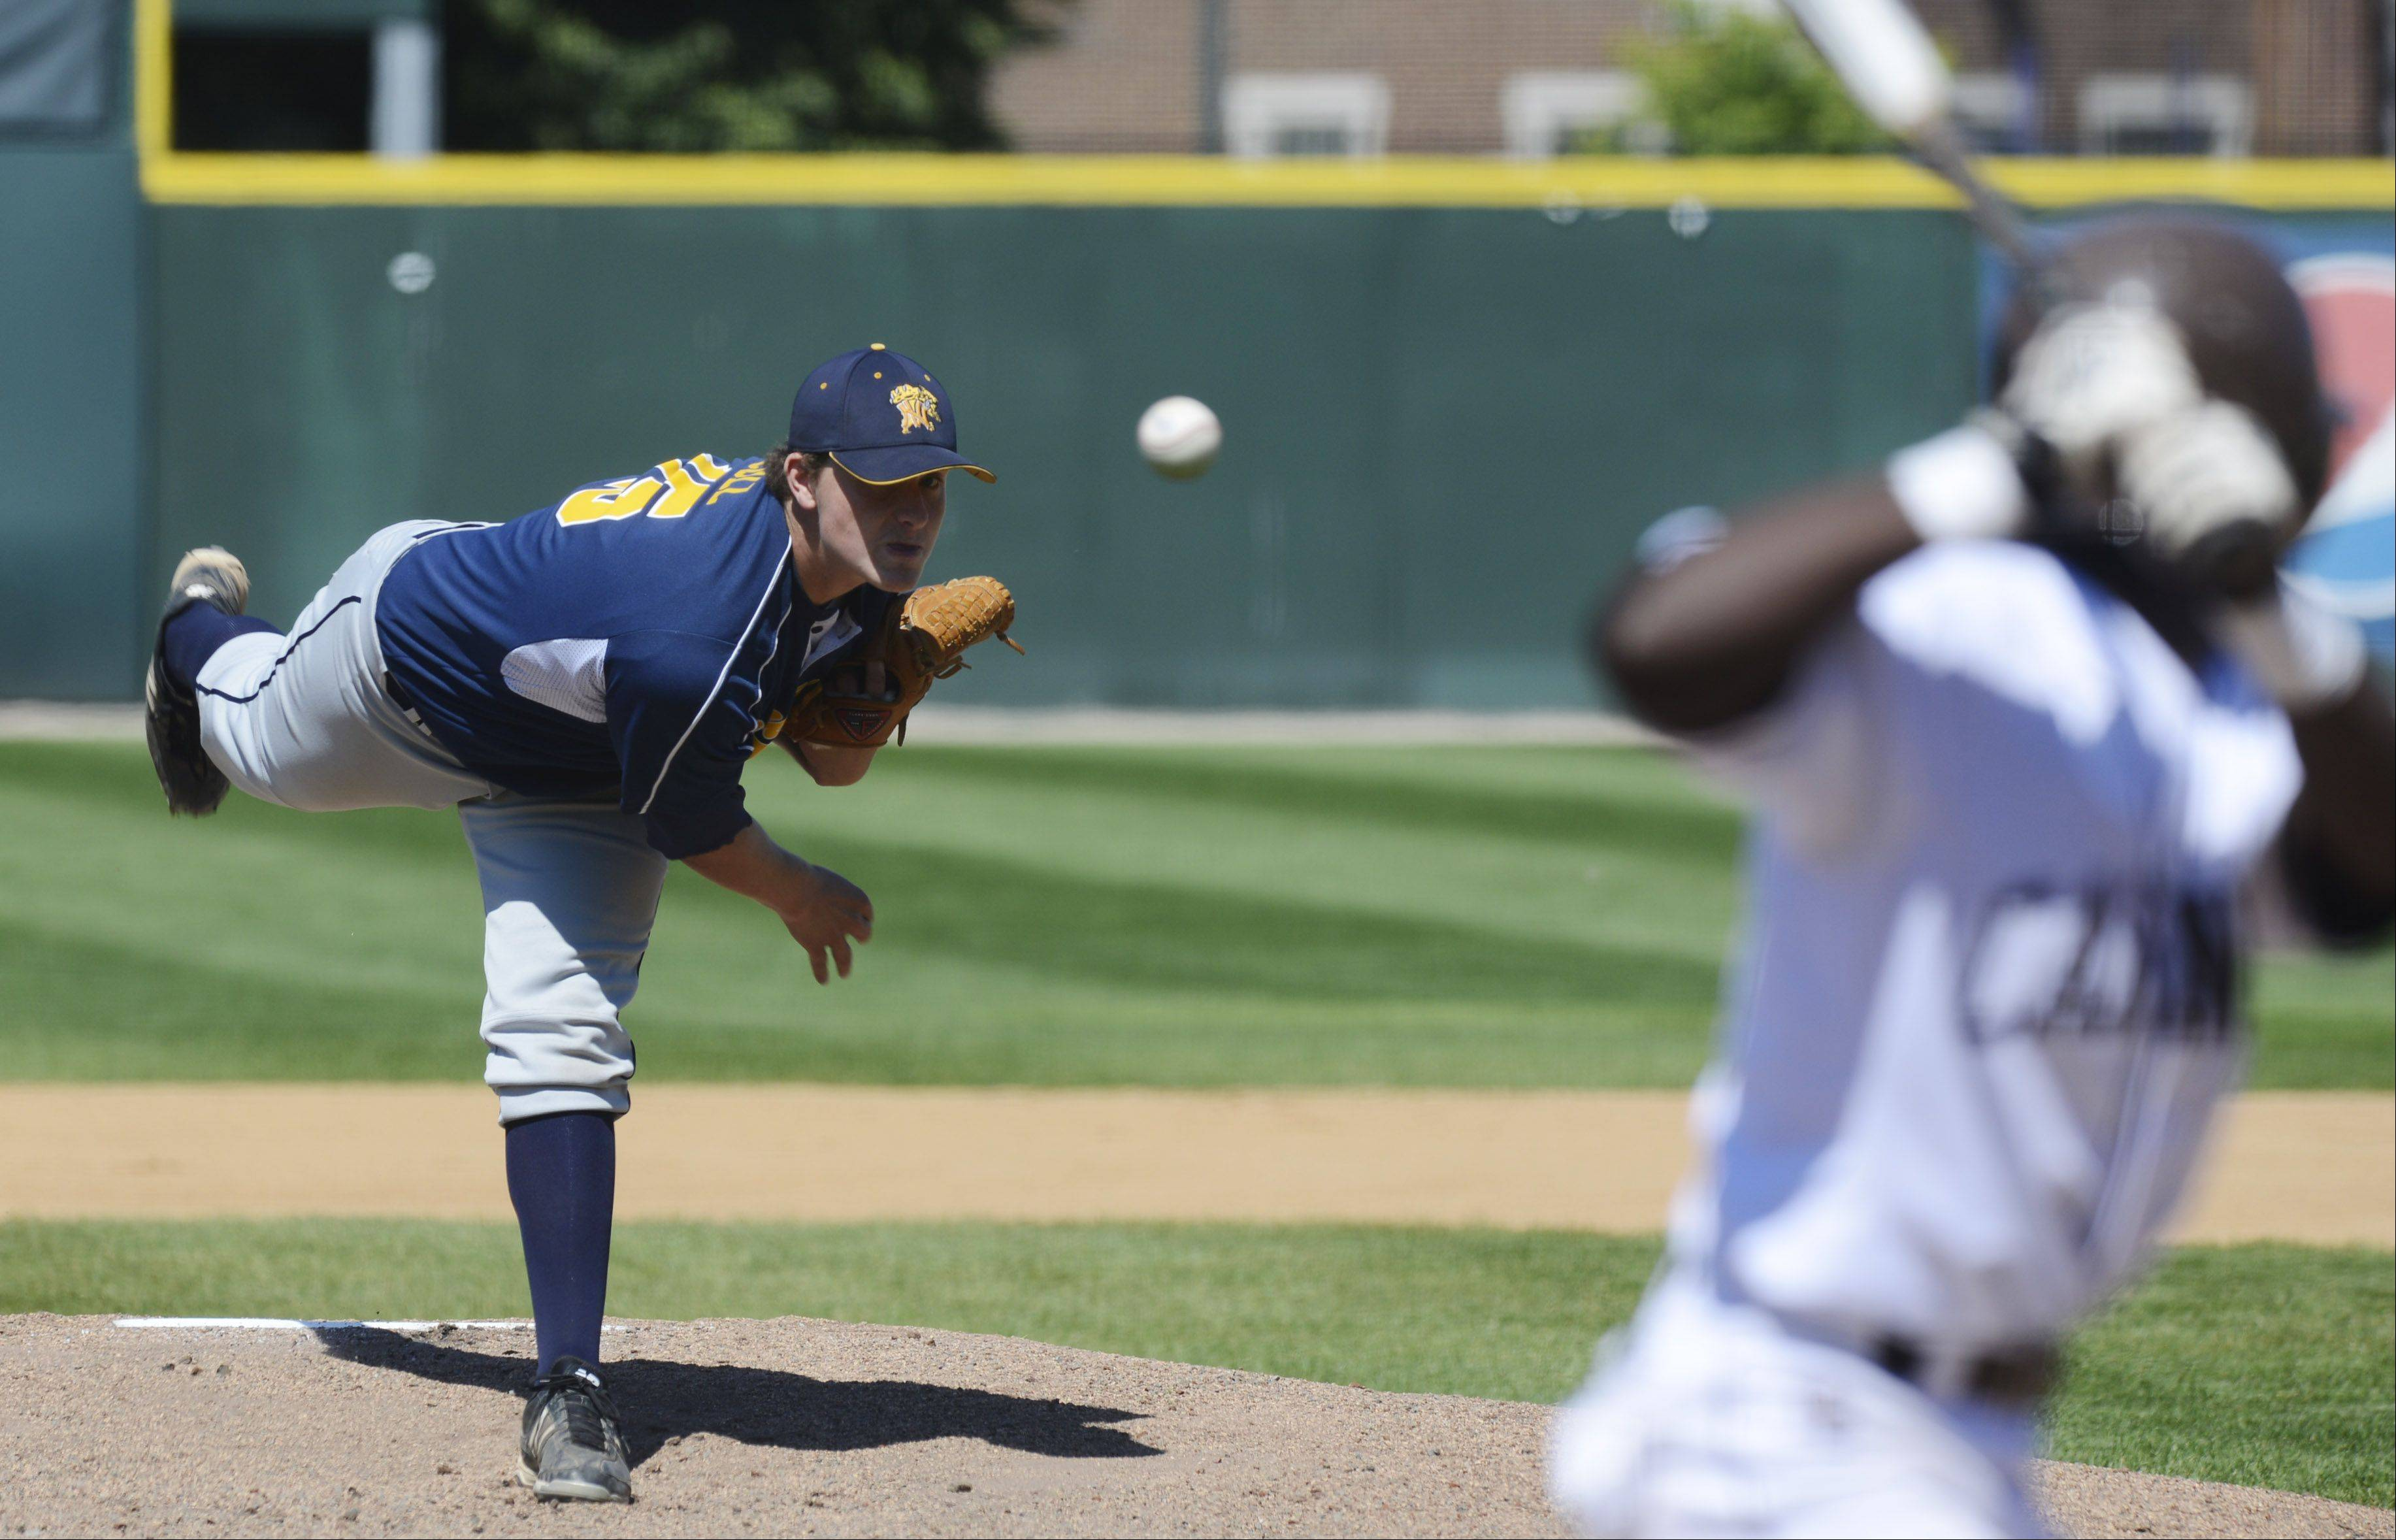 Neuqua Valley pitcher Cody Coll delivers against Mt. Carmel during the Class 4A state baseball semifinals at Silver Cross Field in Joliet Friday.